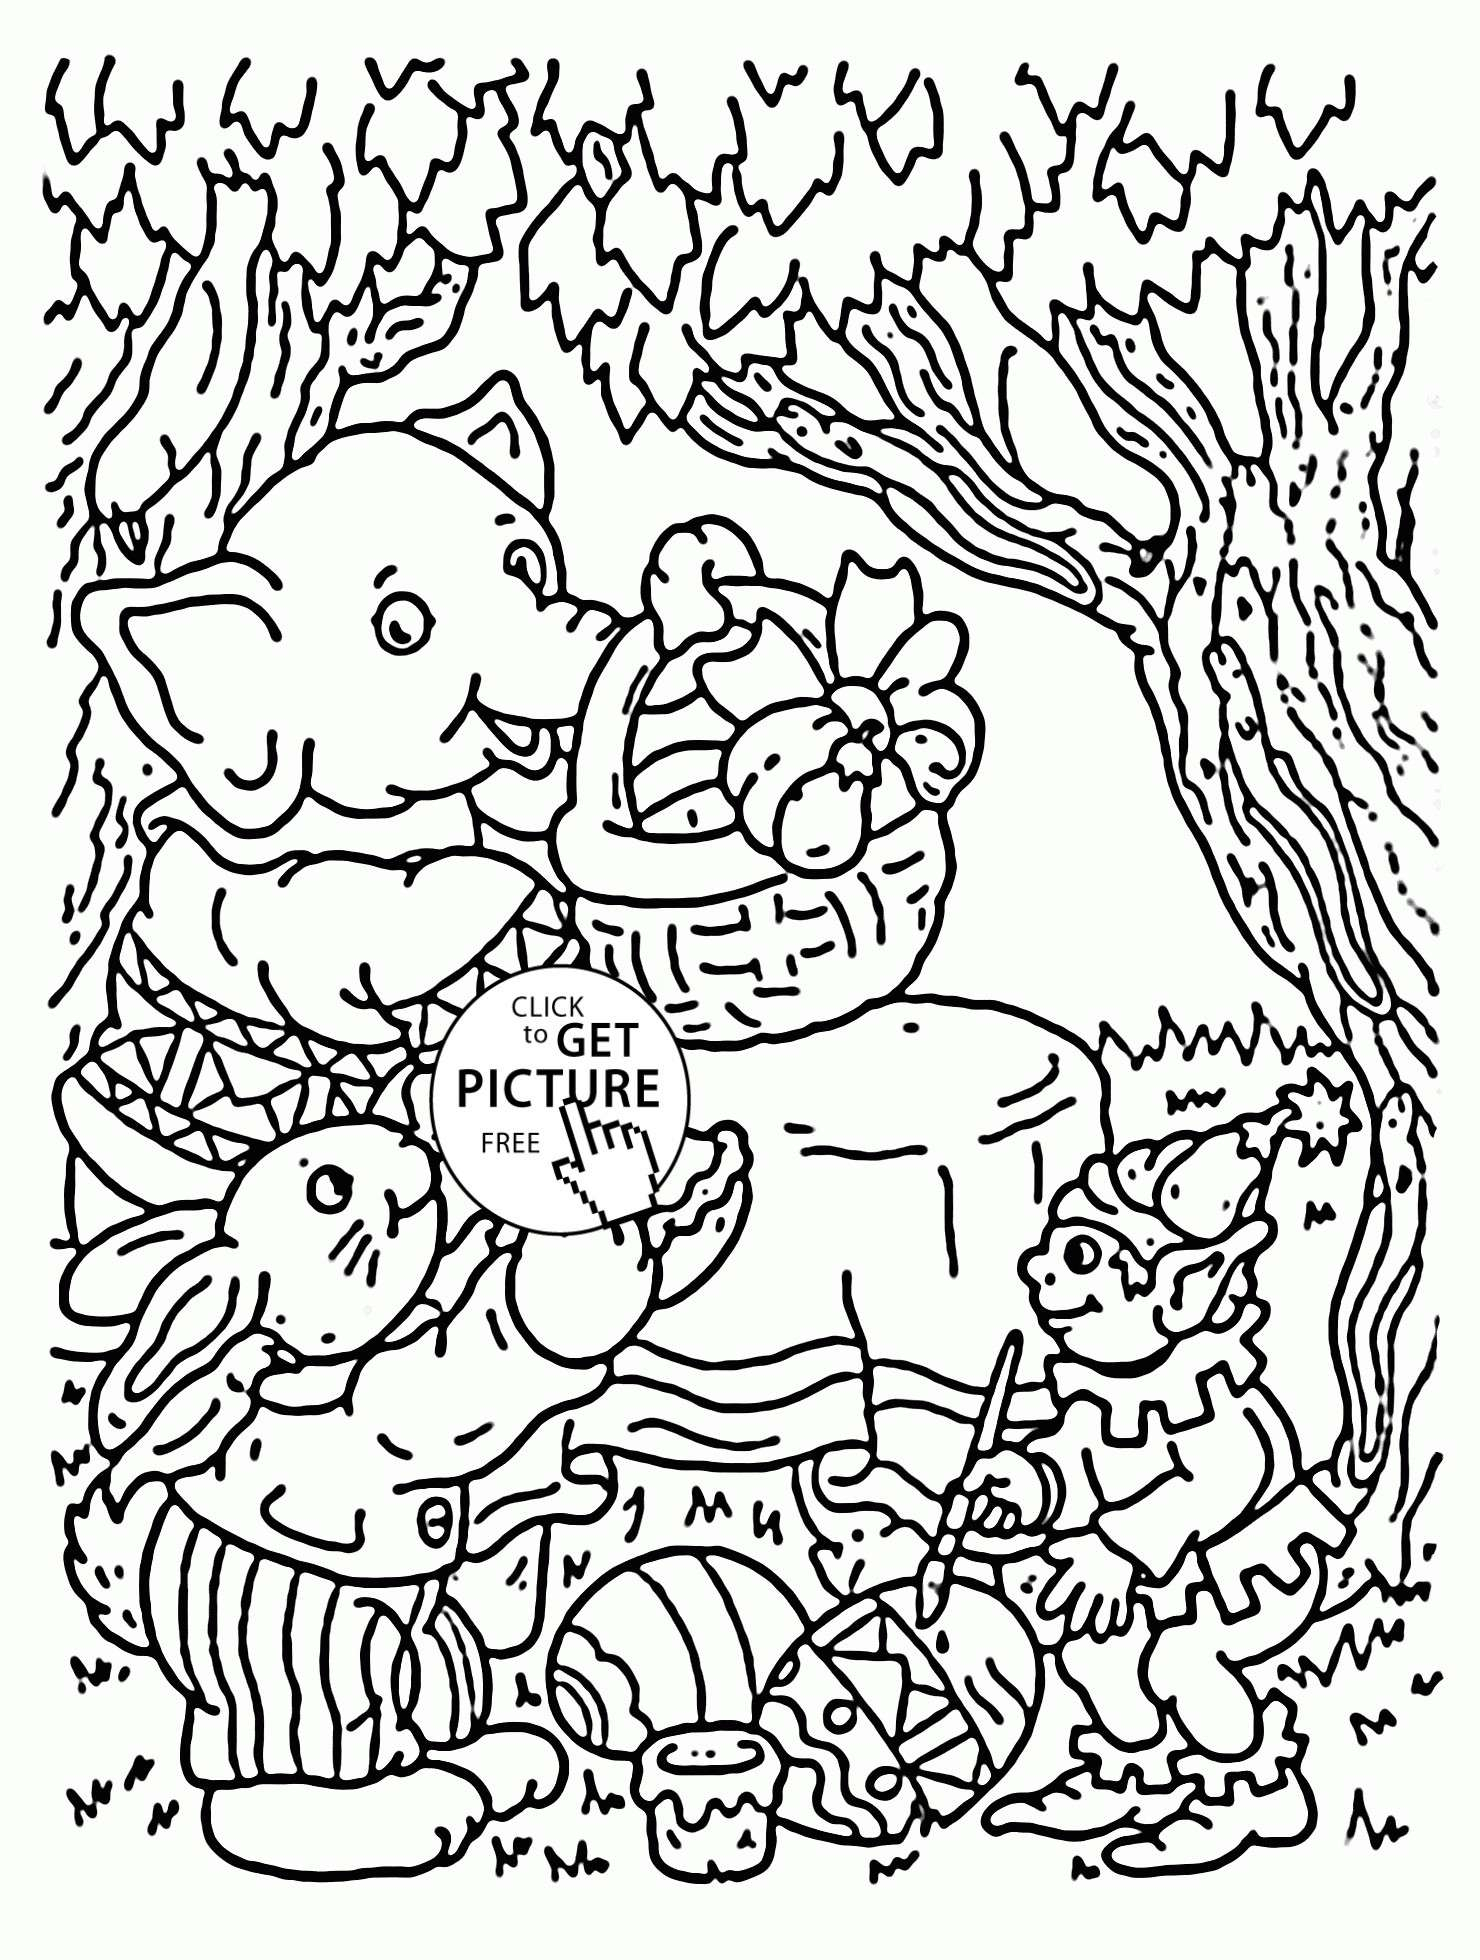 Gumball Coloring Pages  Gallery 10c - To print for your project